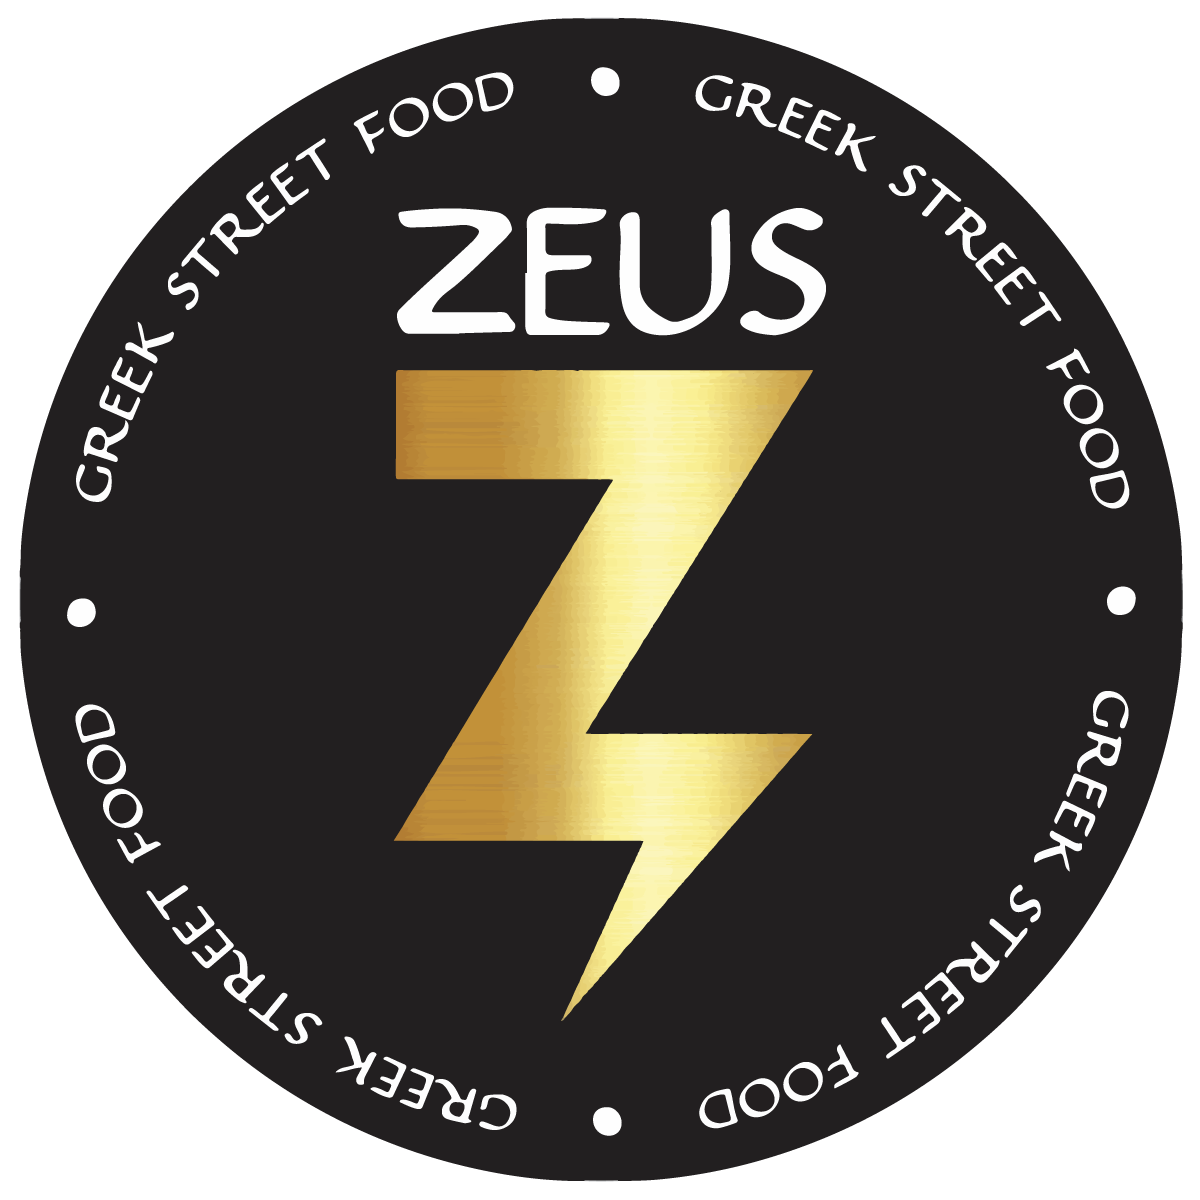 Zeus Greek Street Food Atlanta Ga